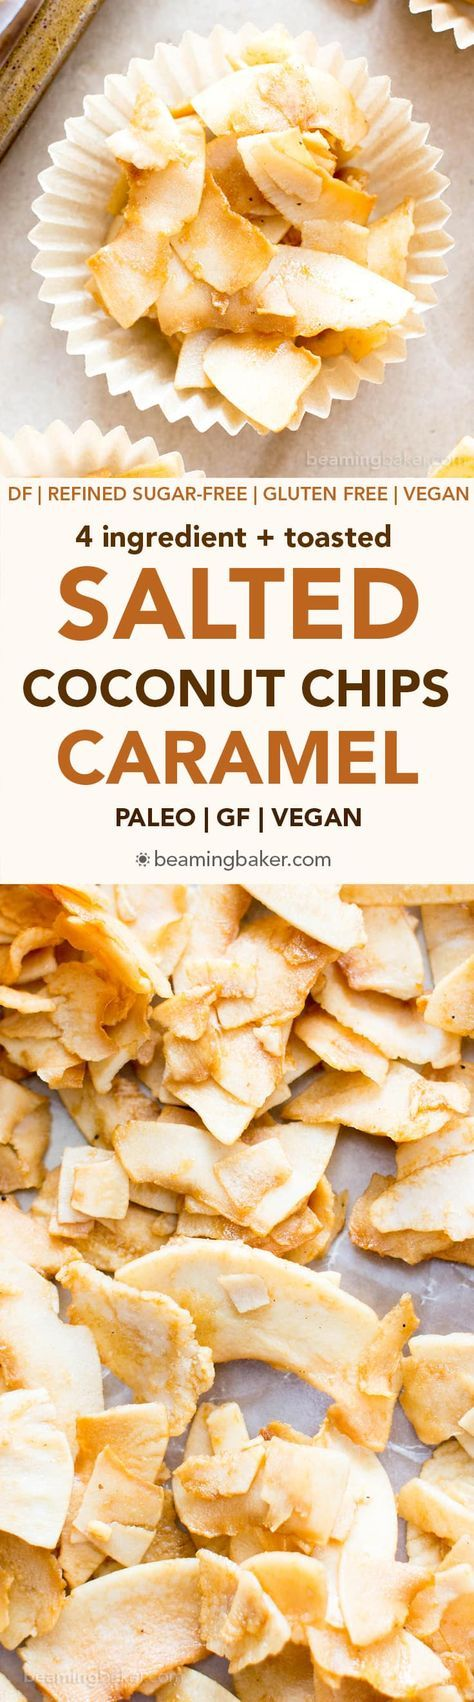 Salted Caramel Coconut Chips #christmas #recipe